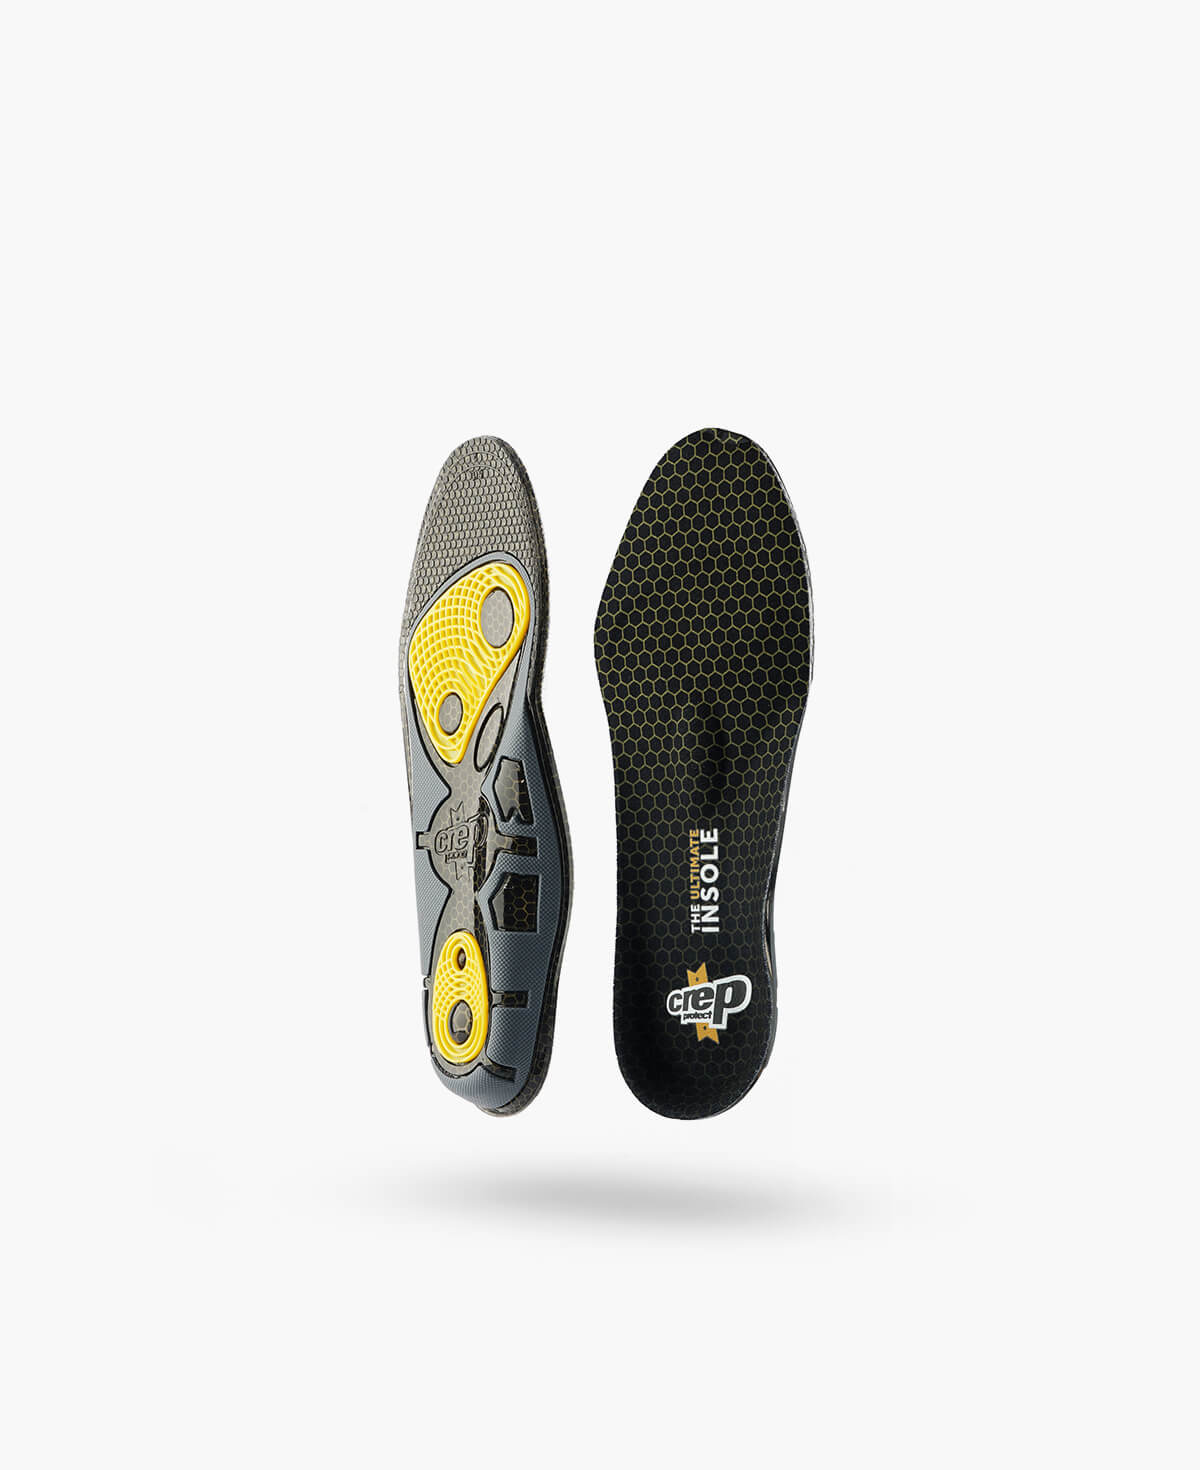 Miếng Lót Giầy Nam Gel Crep Protect Ultimate Gel Insole